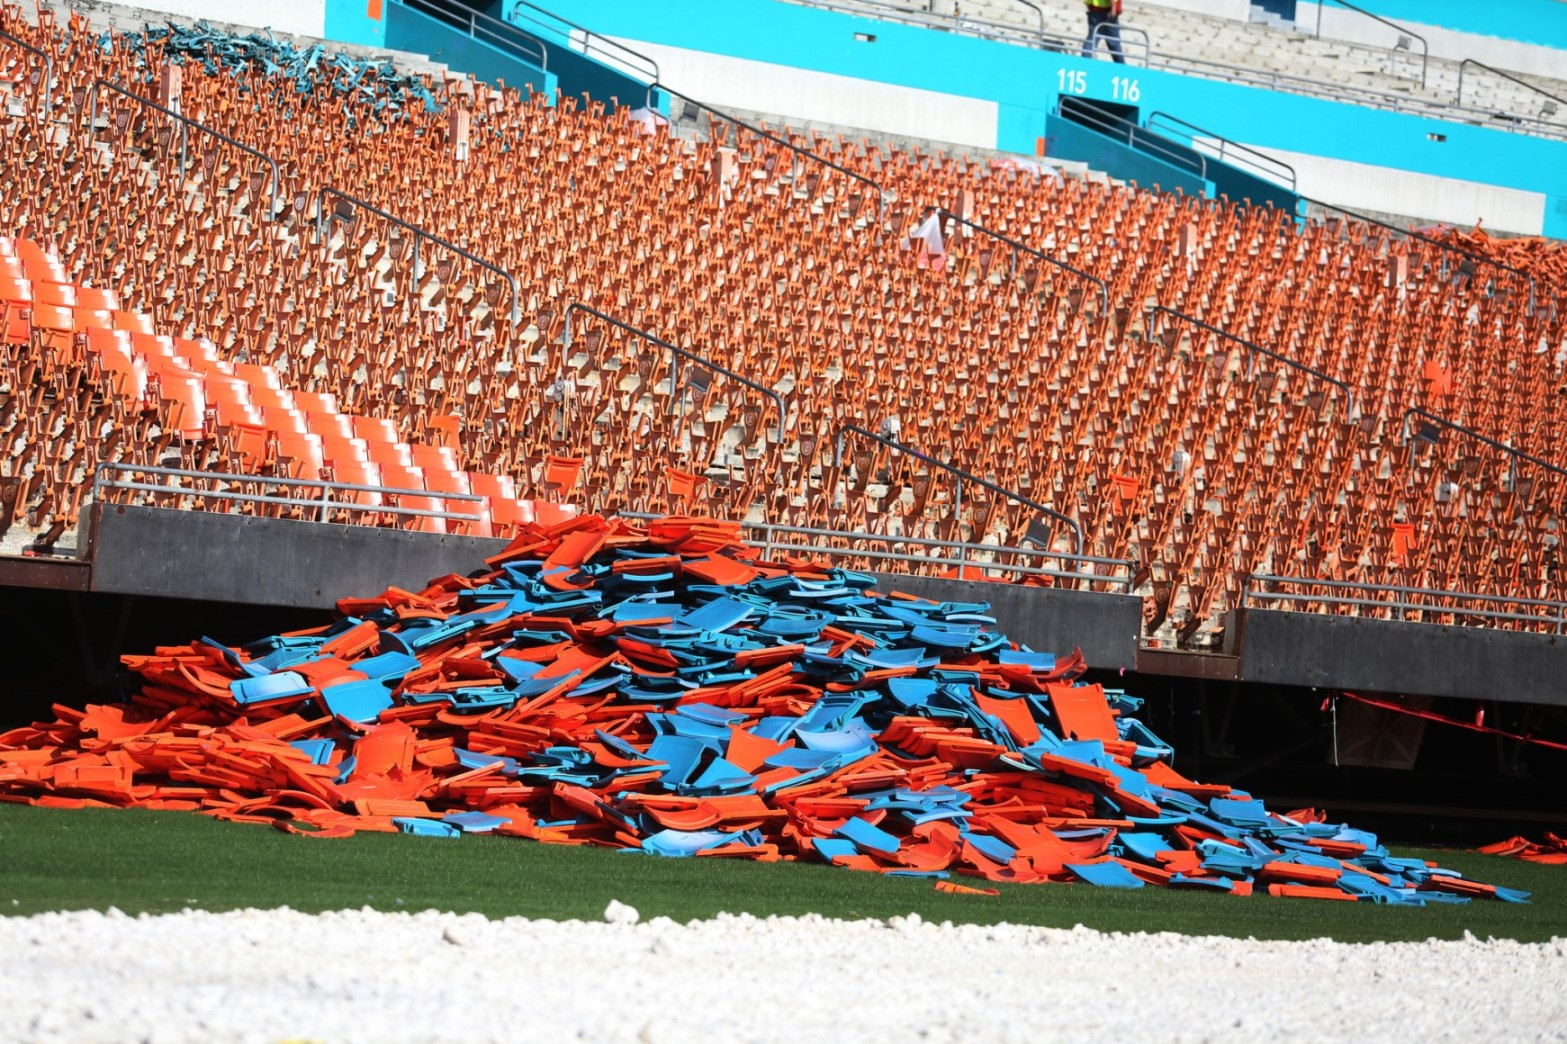 sfl-d1dolphins-sell-old-sun-life-stadium-seats-20150706.jpg